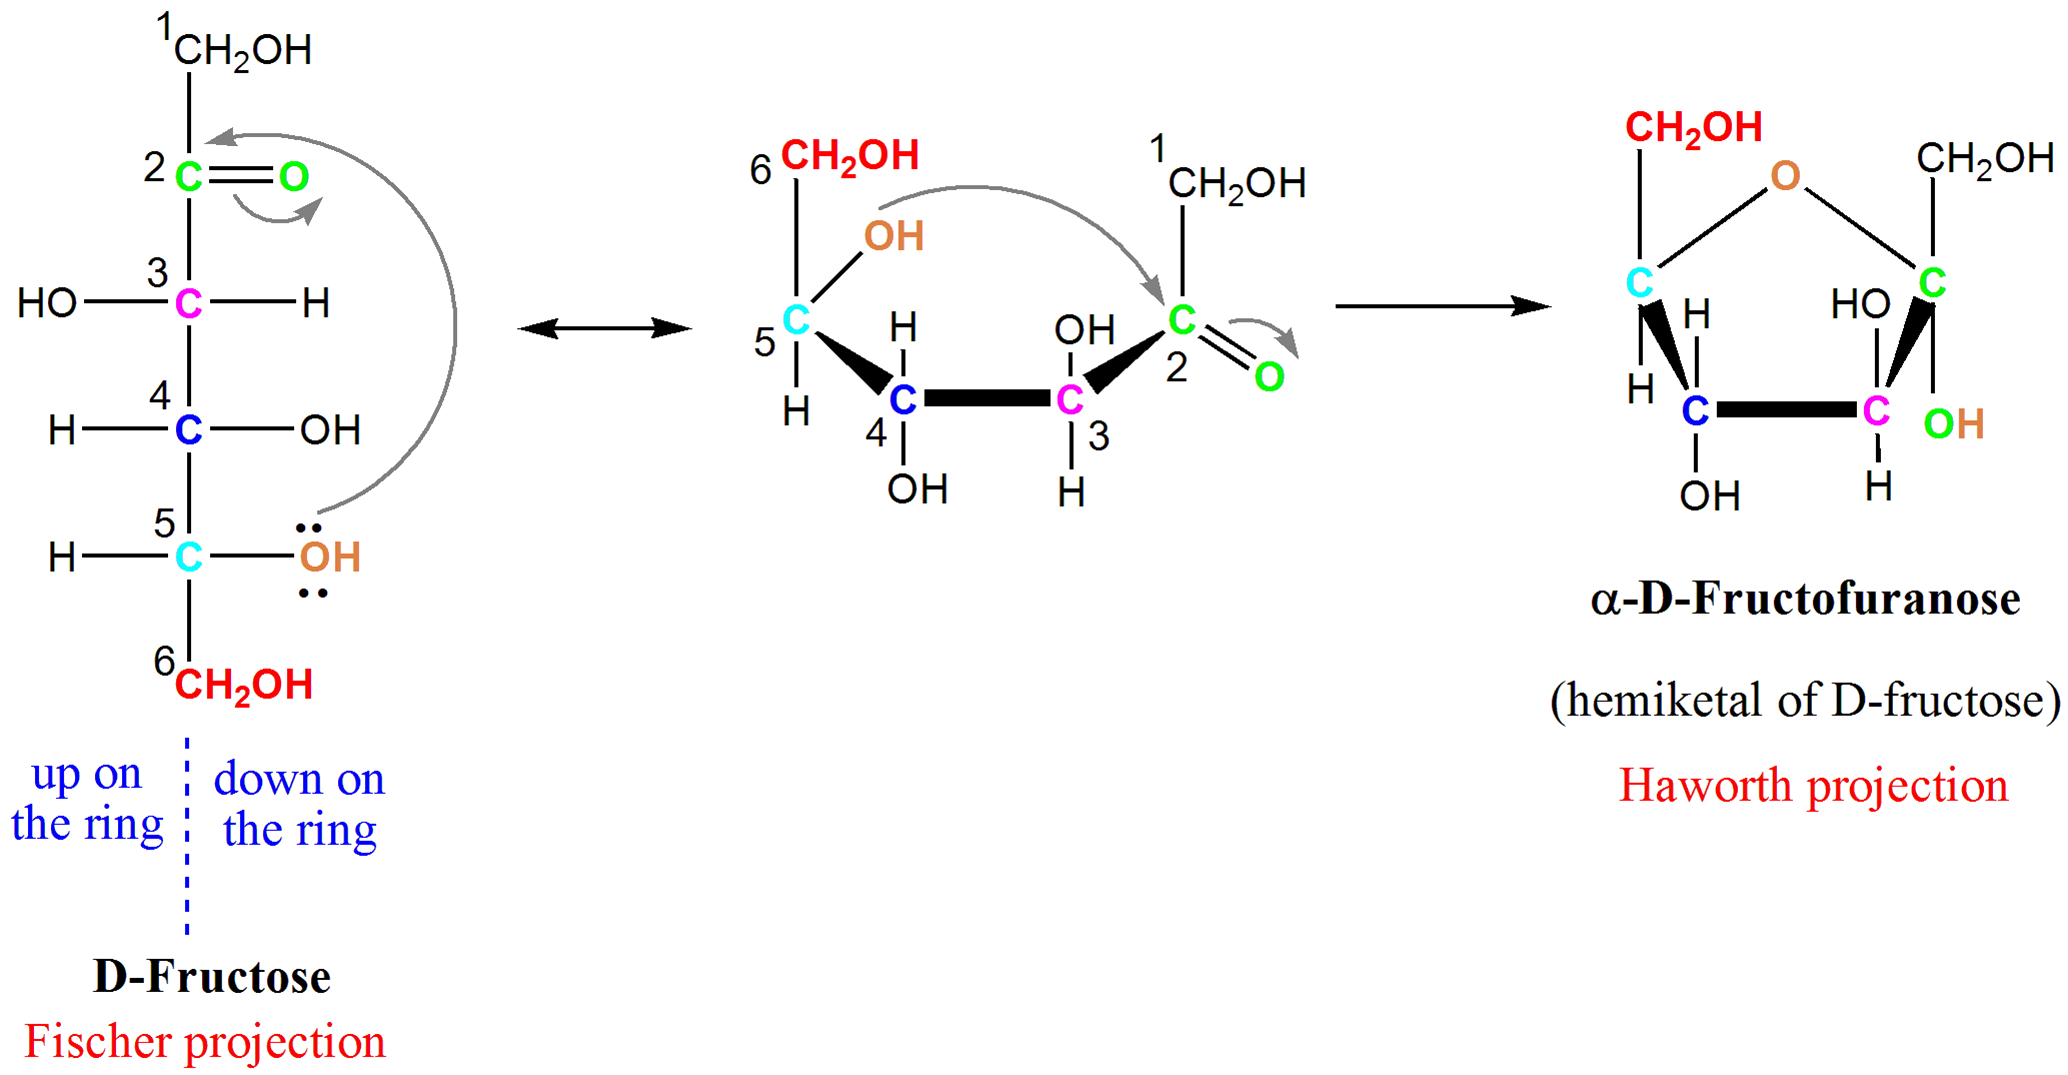 Chair conformation glucose - Diagram Of Fructose Cyclizing